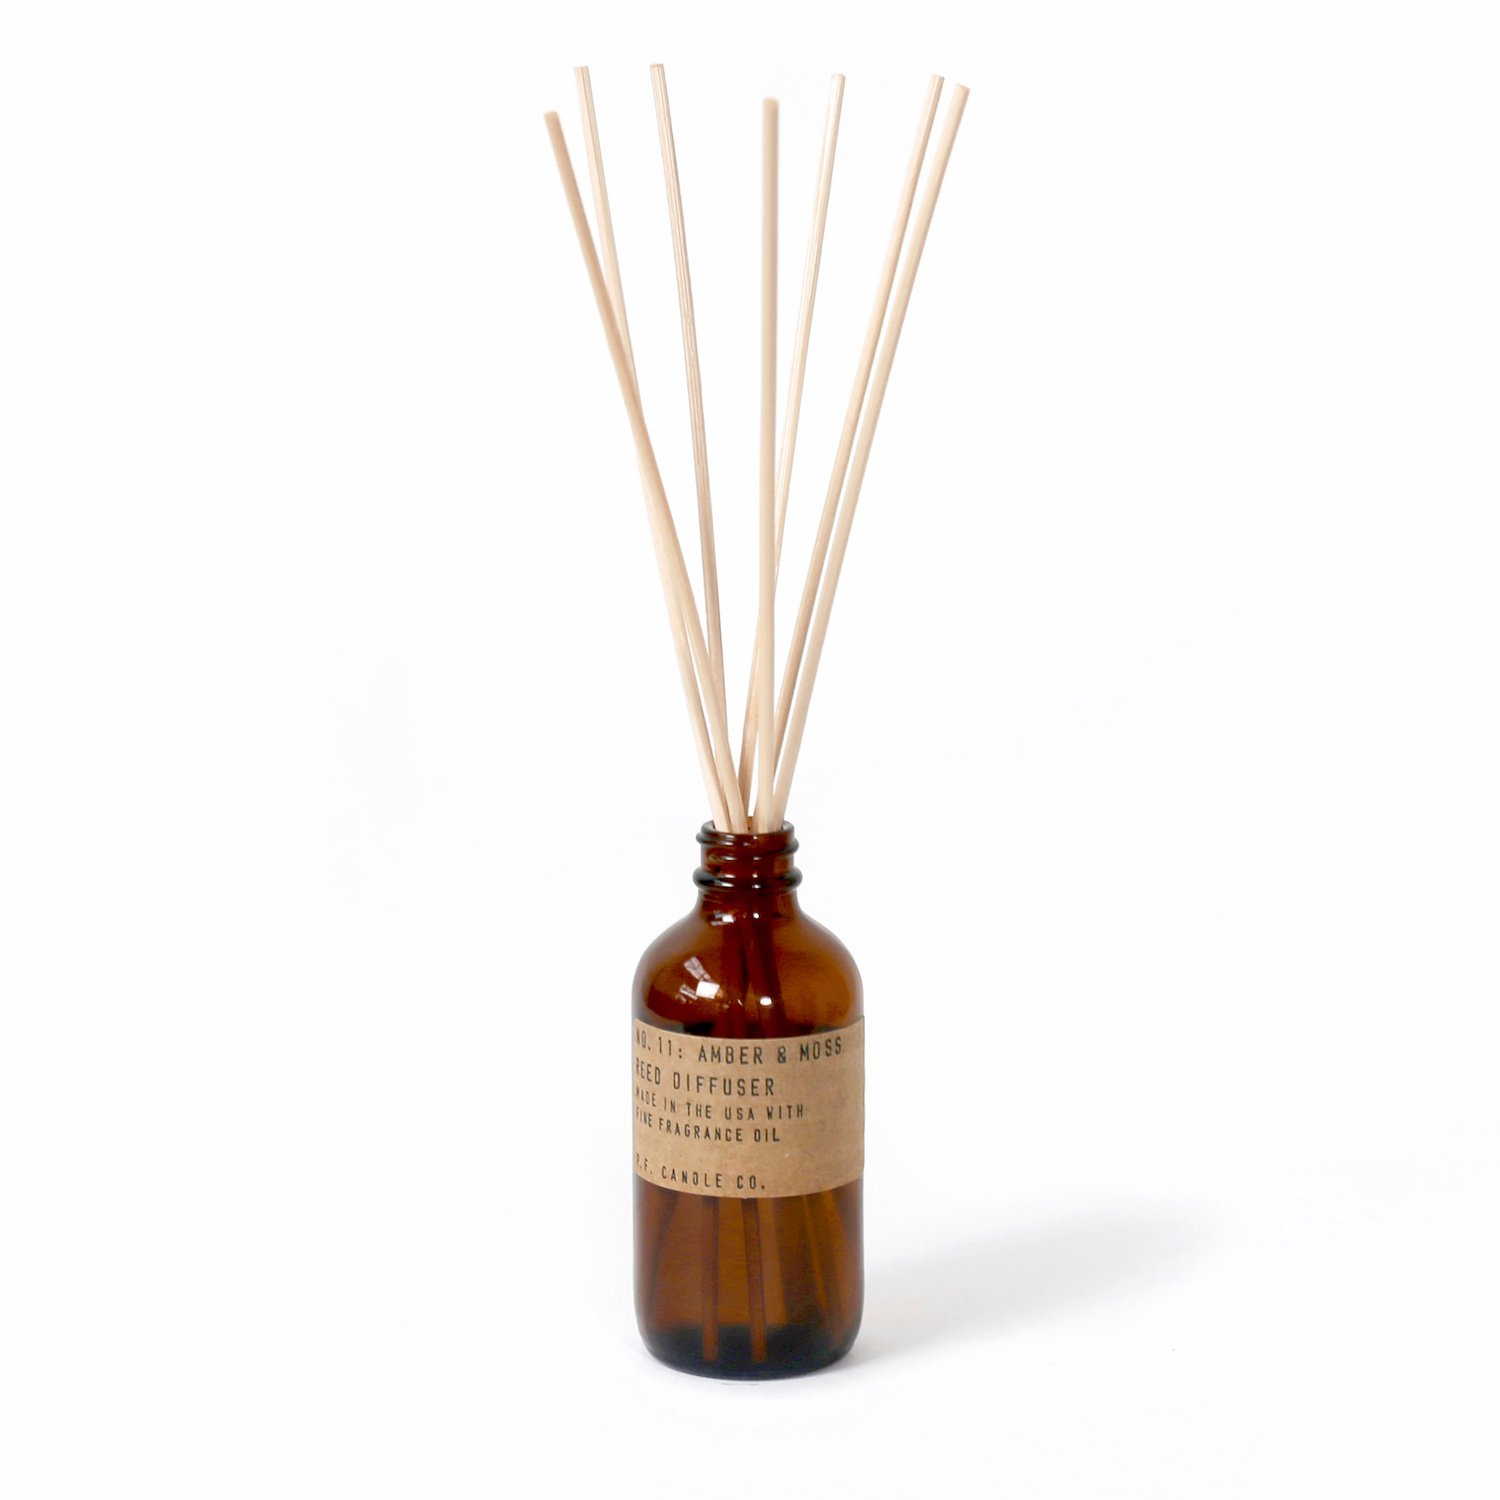 P.F. CANDLE CO.   #Reed Diffuser / 11 AMBER&MOSS